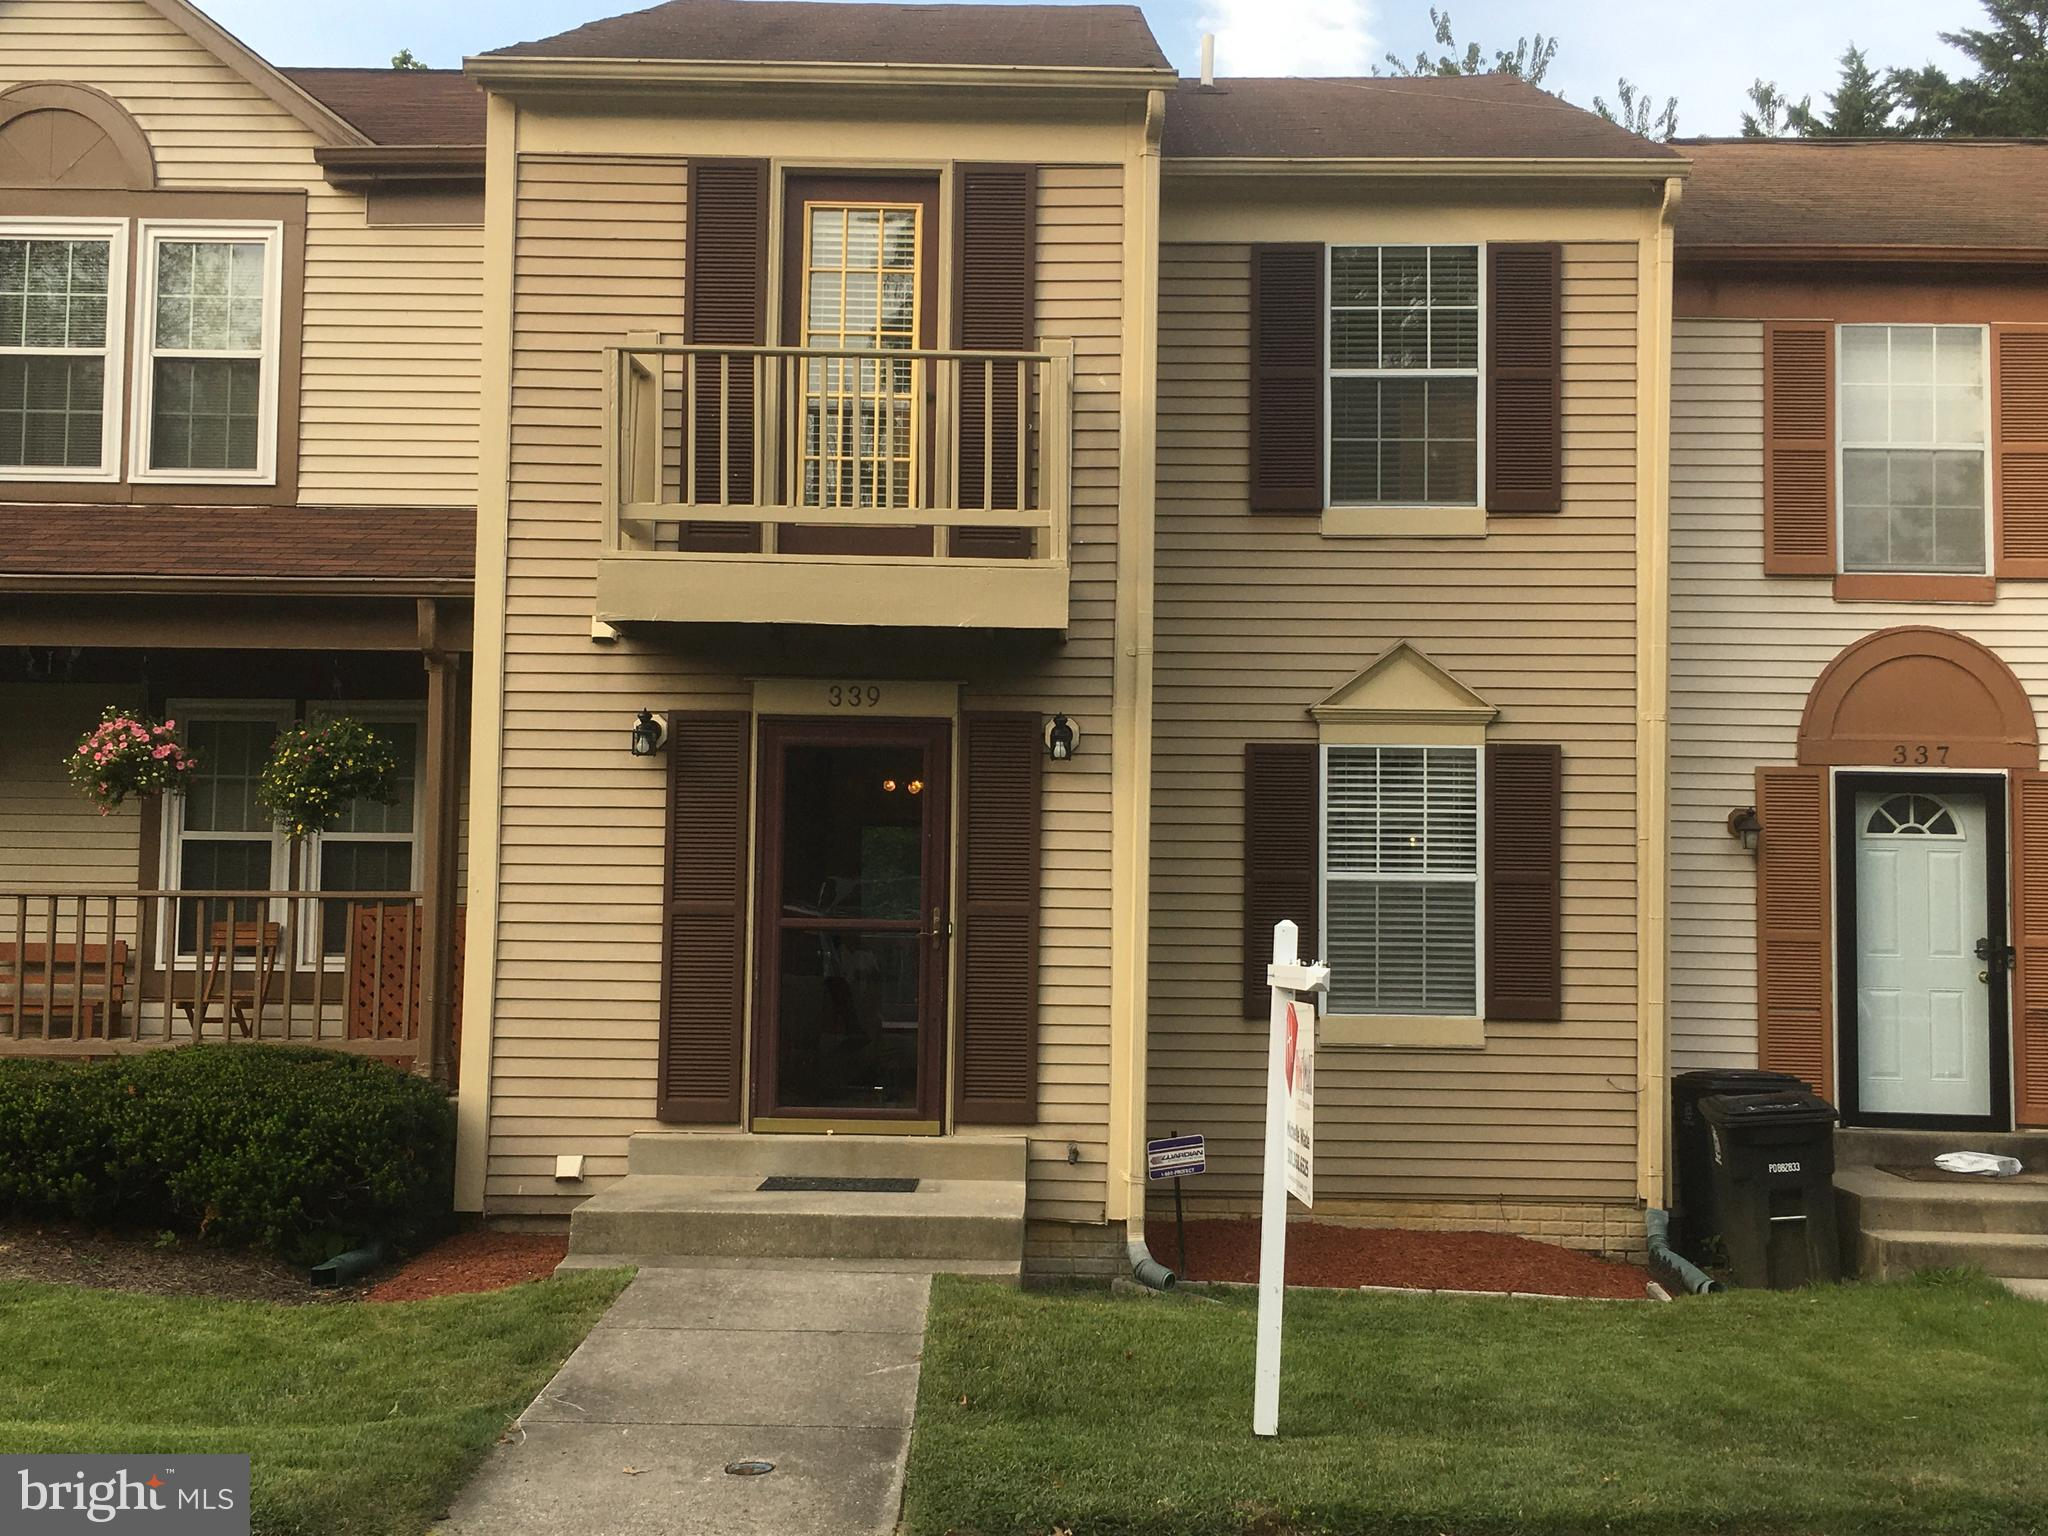 OFFERS RECEIVED! Submit highest and best by 8pm, Thursday, August 12th. Newly remodeled 3BR, 3 1/2 B